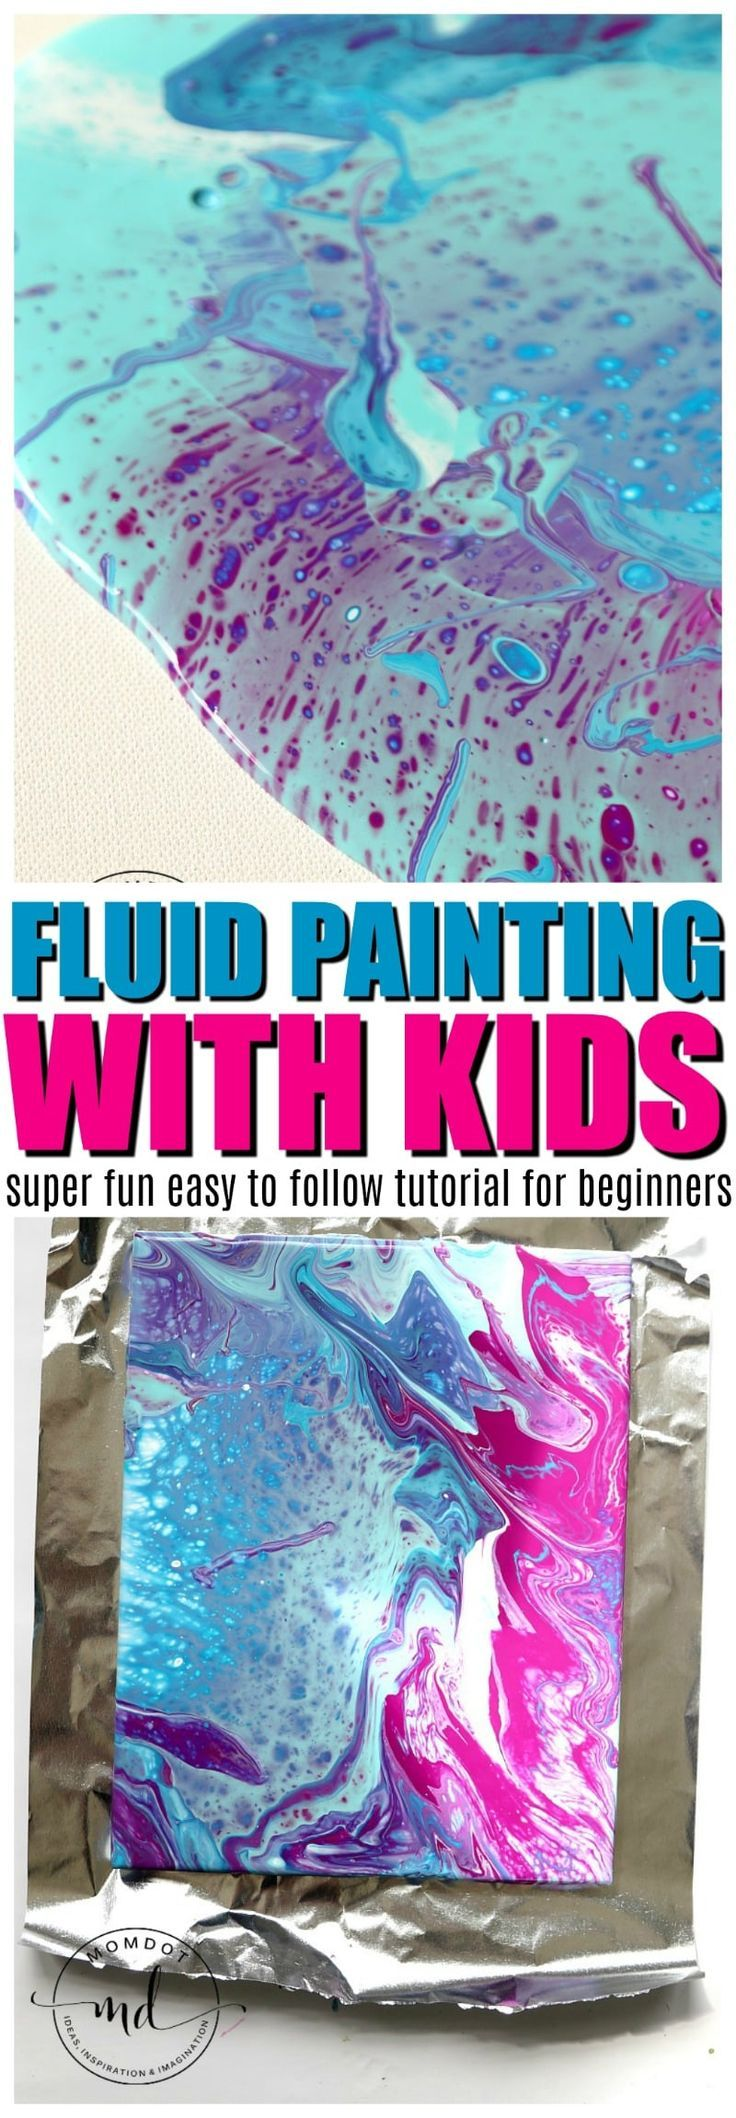 how to fluid paint with kids | Fluid Painting Tutorial | Acrylic Fluid Painting DIY